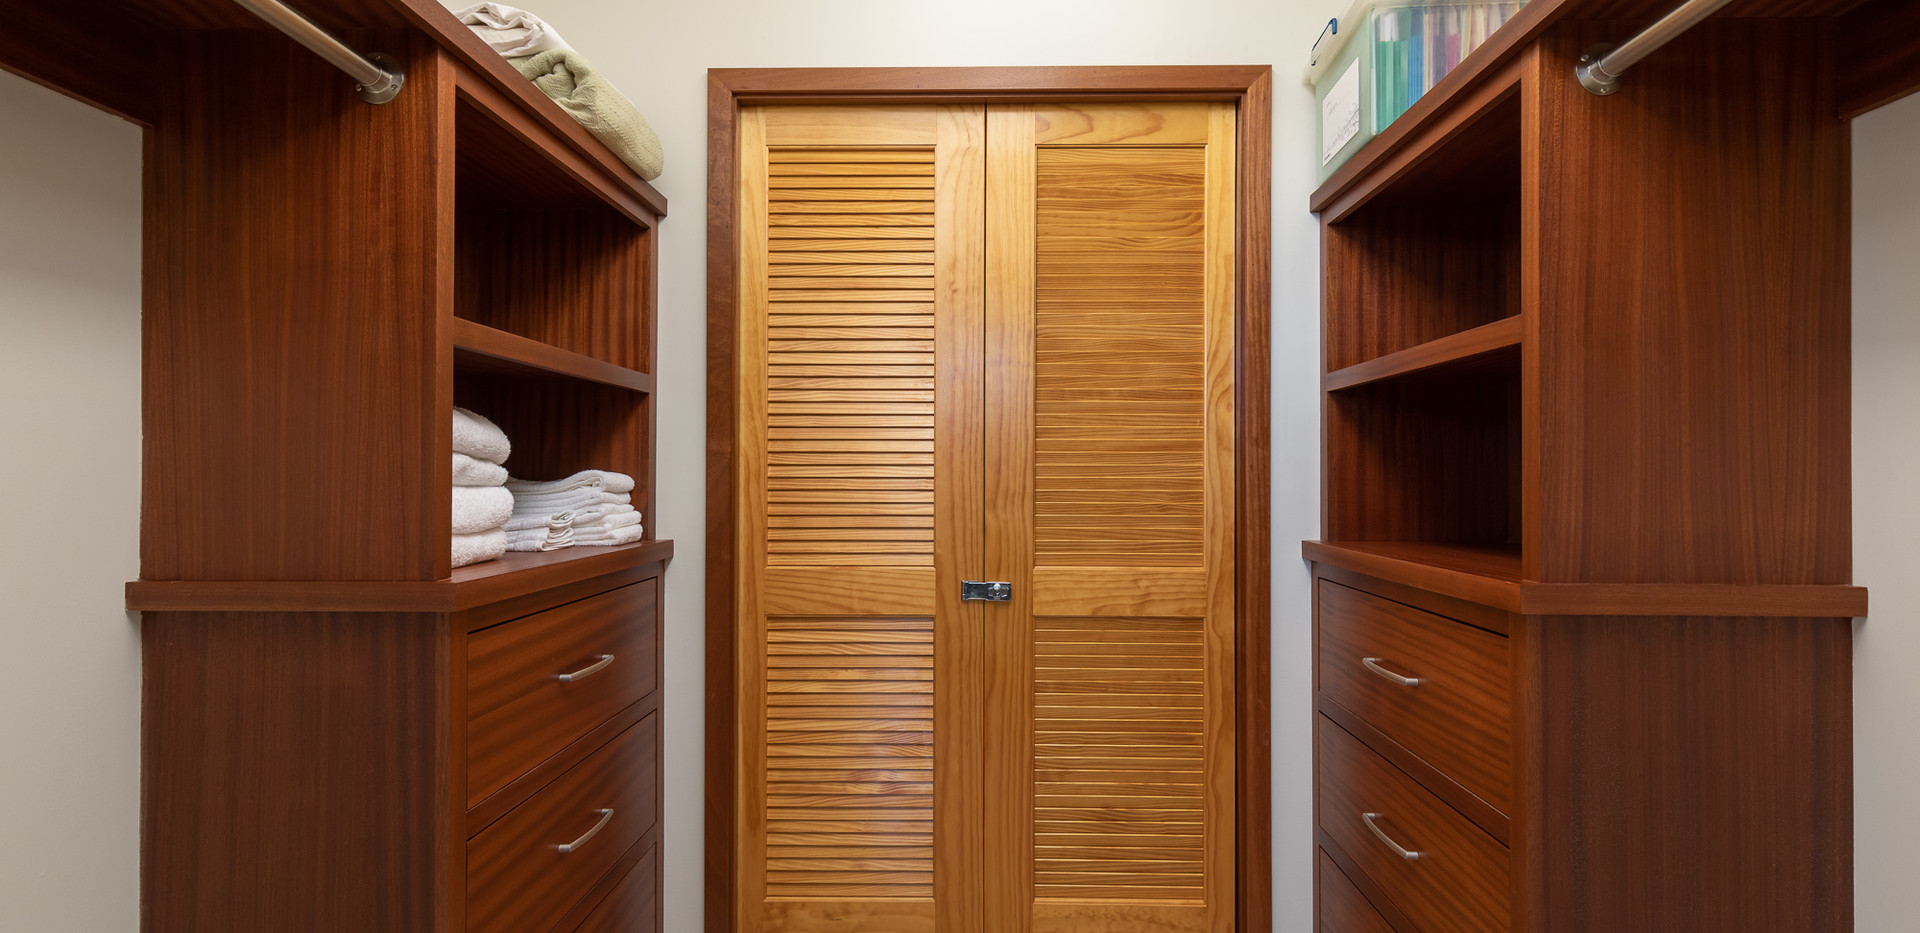 Large closet off of the master bedroom